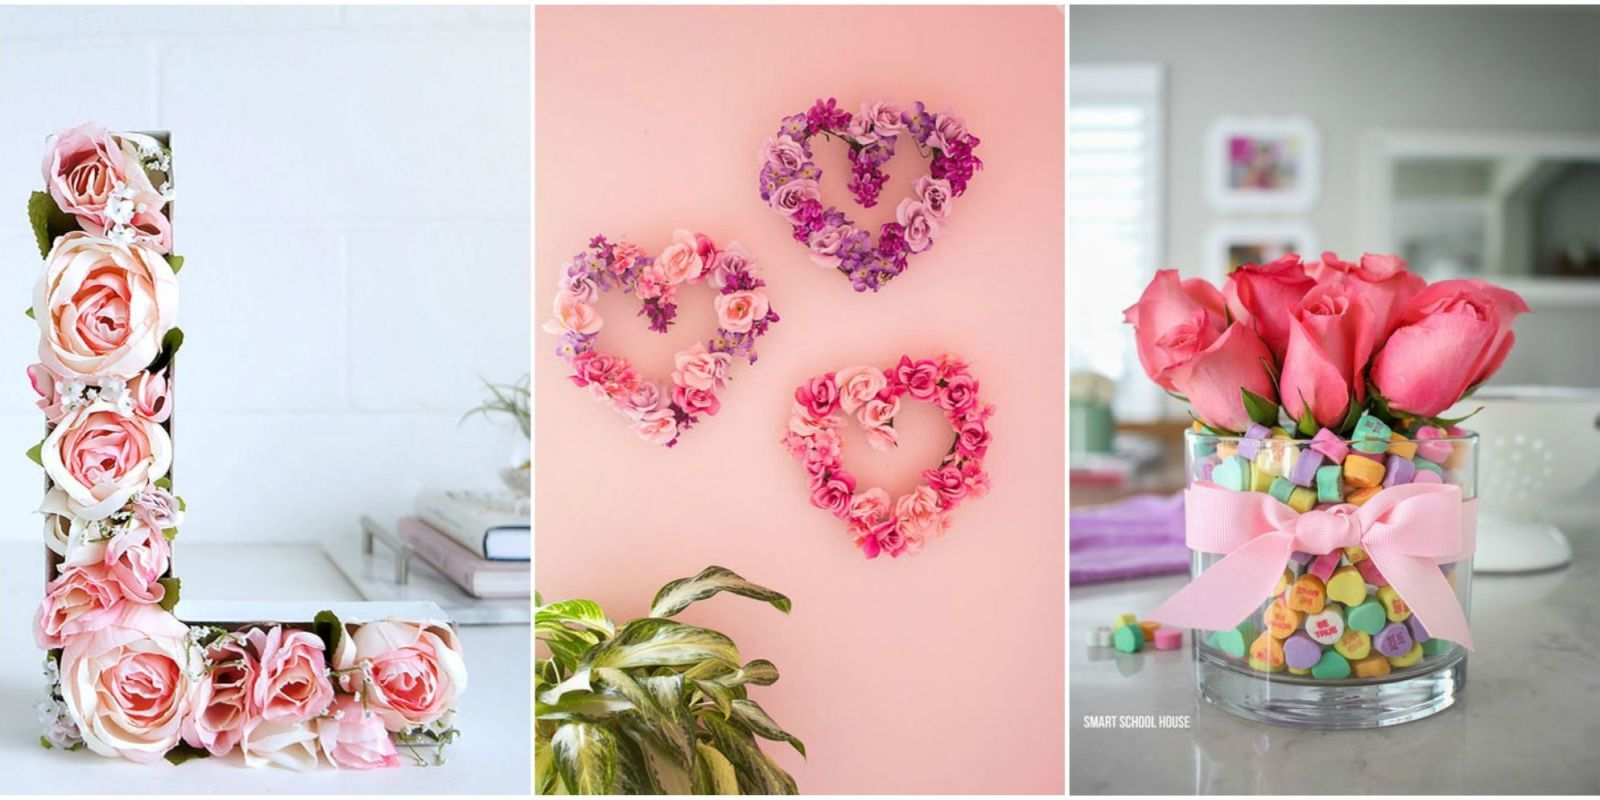 Get Crafty This Valentineu0027s Day With These Cute Ideas For Home And Party  Decor.